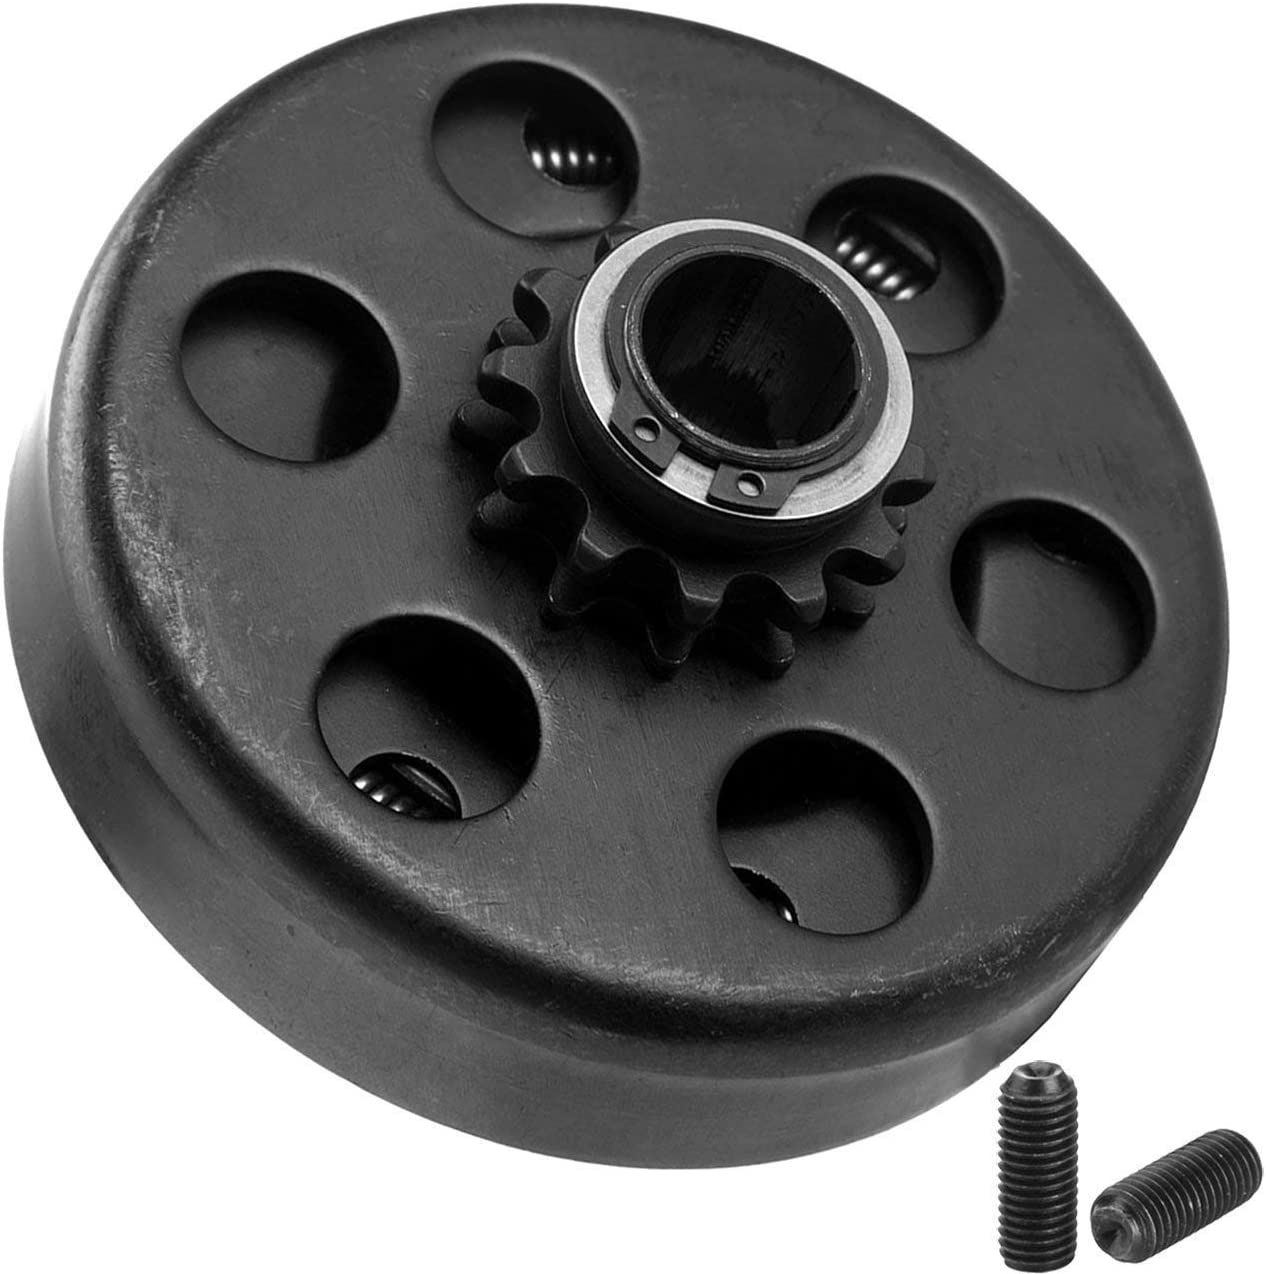 FDJ Centrifugal Clutch 12 Tooth with 3//4 Bore #35 Chain 10 Feet and Chain Breaker Tool Kit